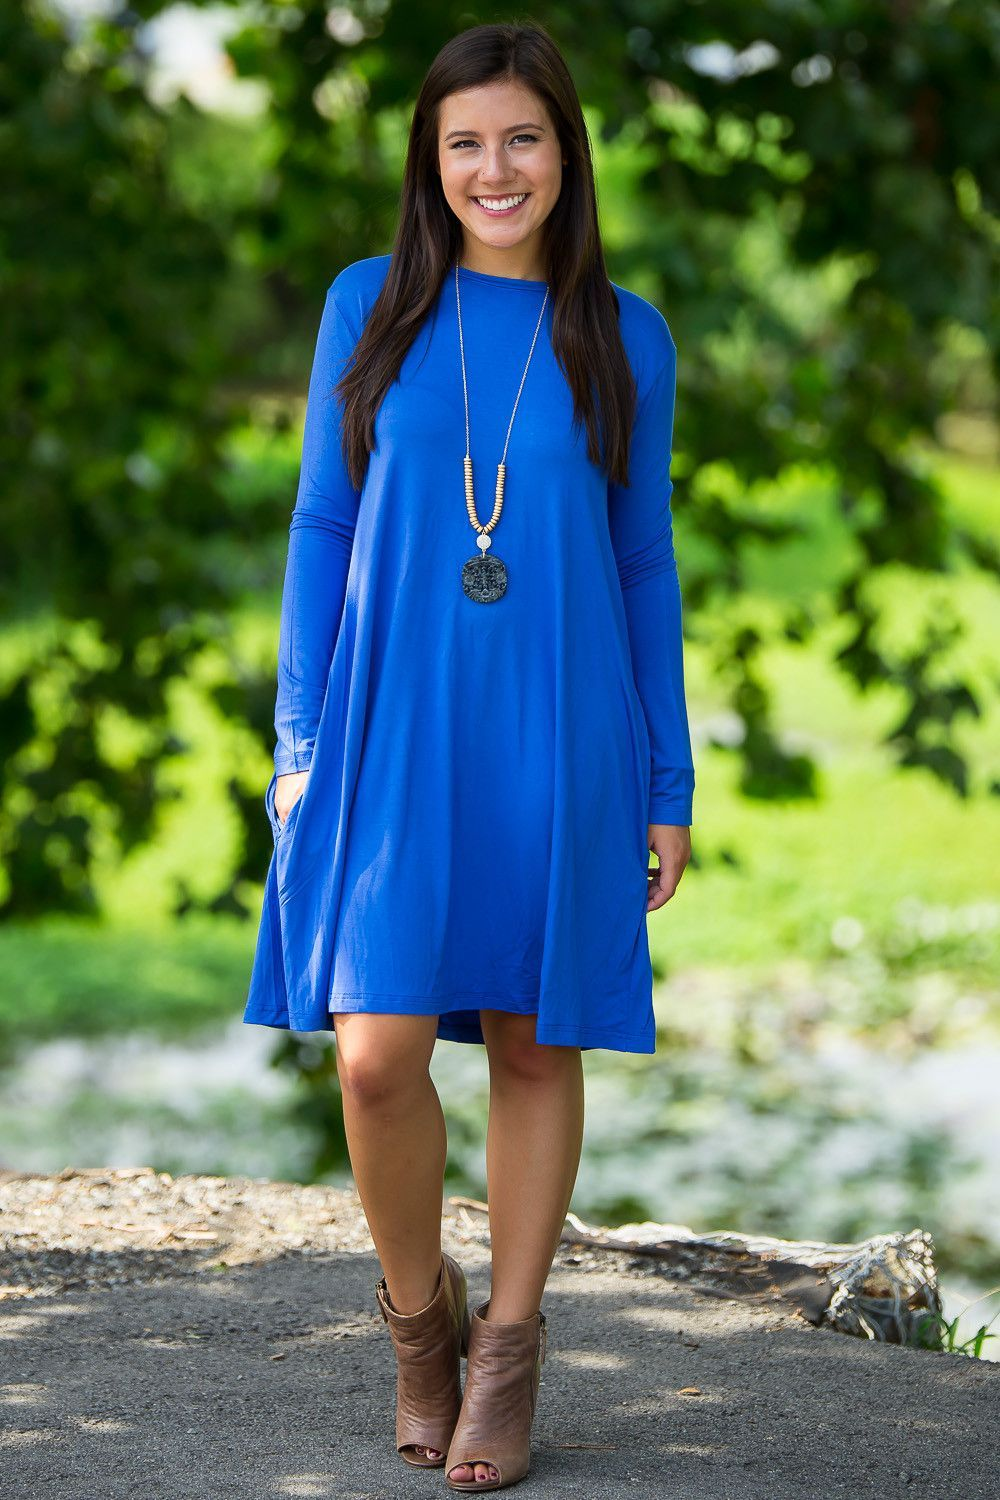 f306b27a38d The same company that brought you your piko tunic is bringing you a piko  dress…